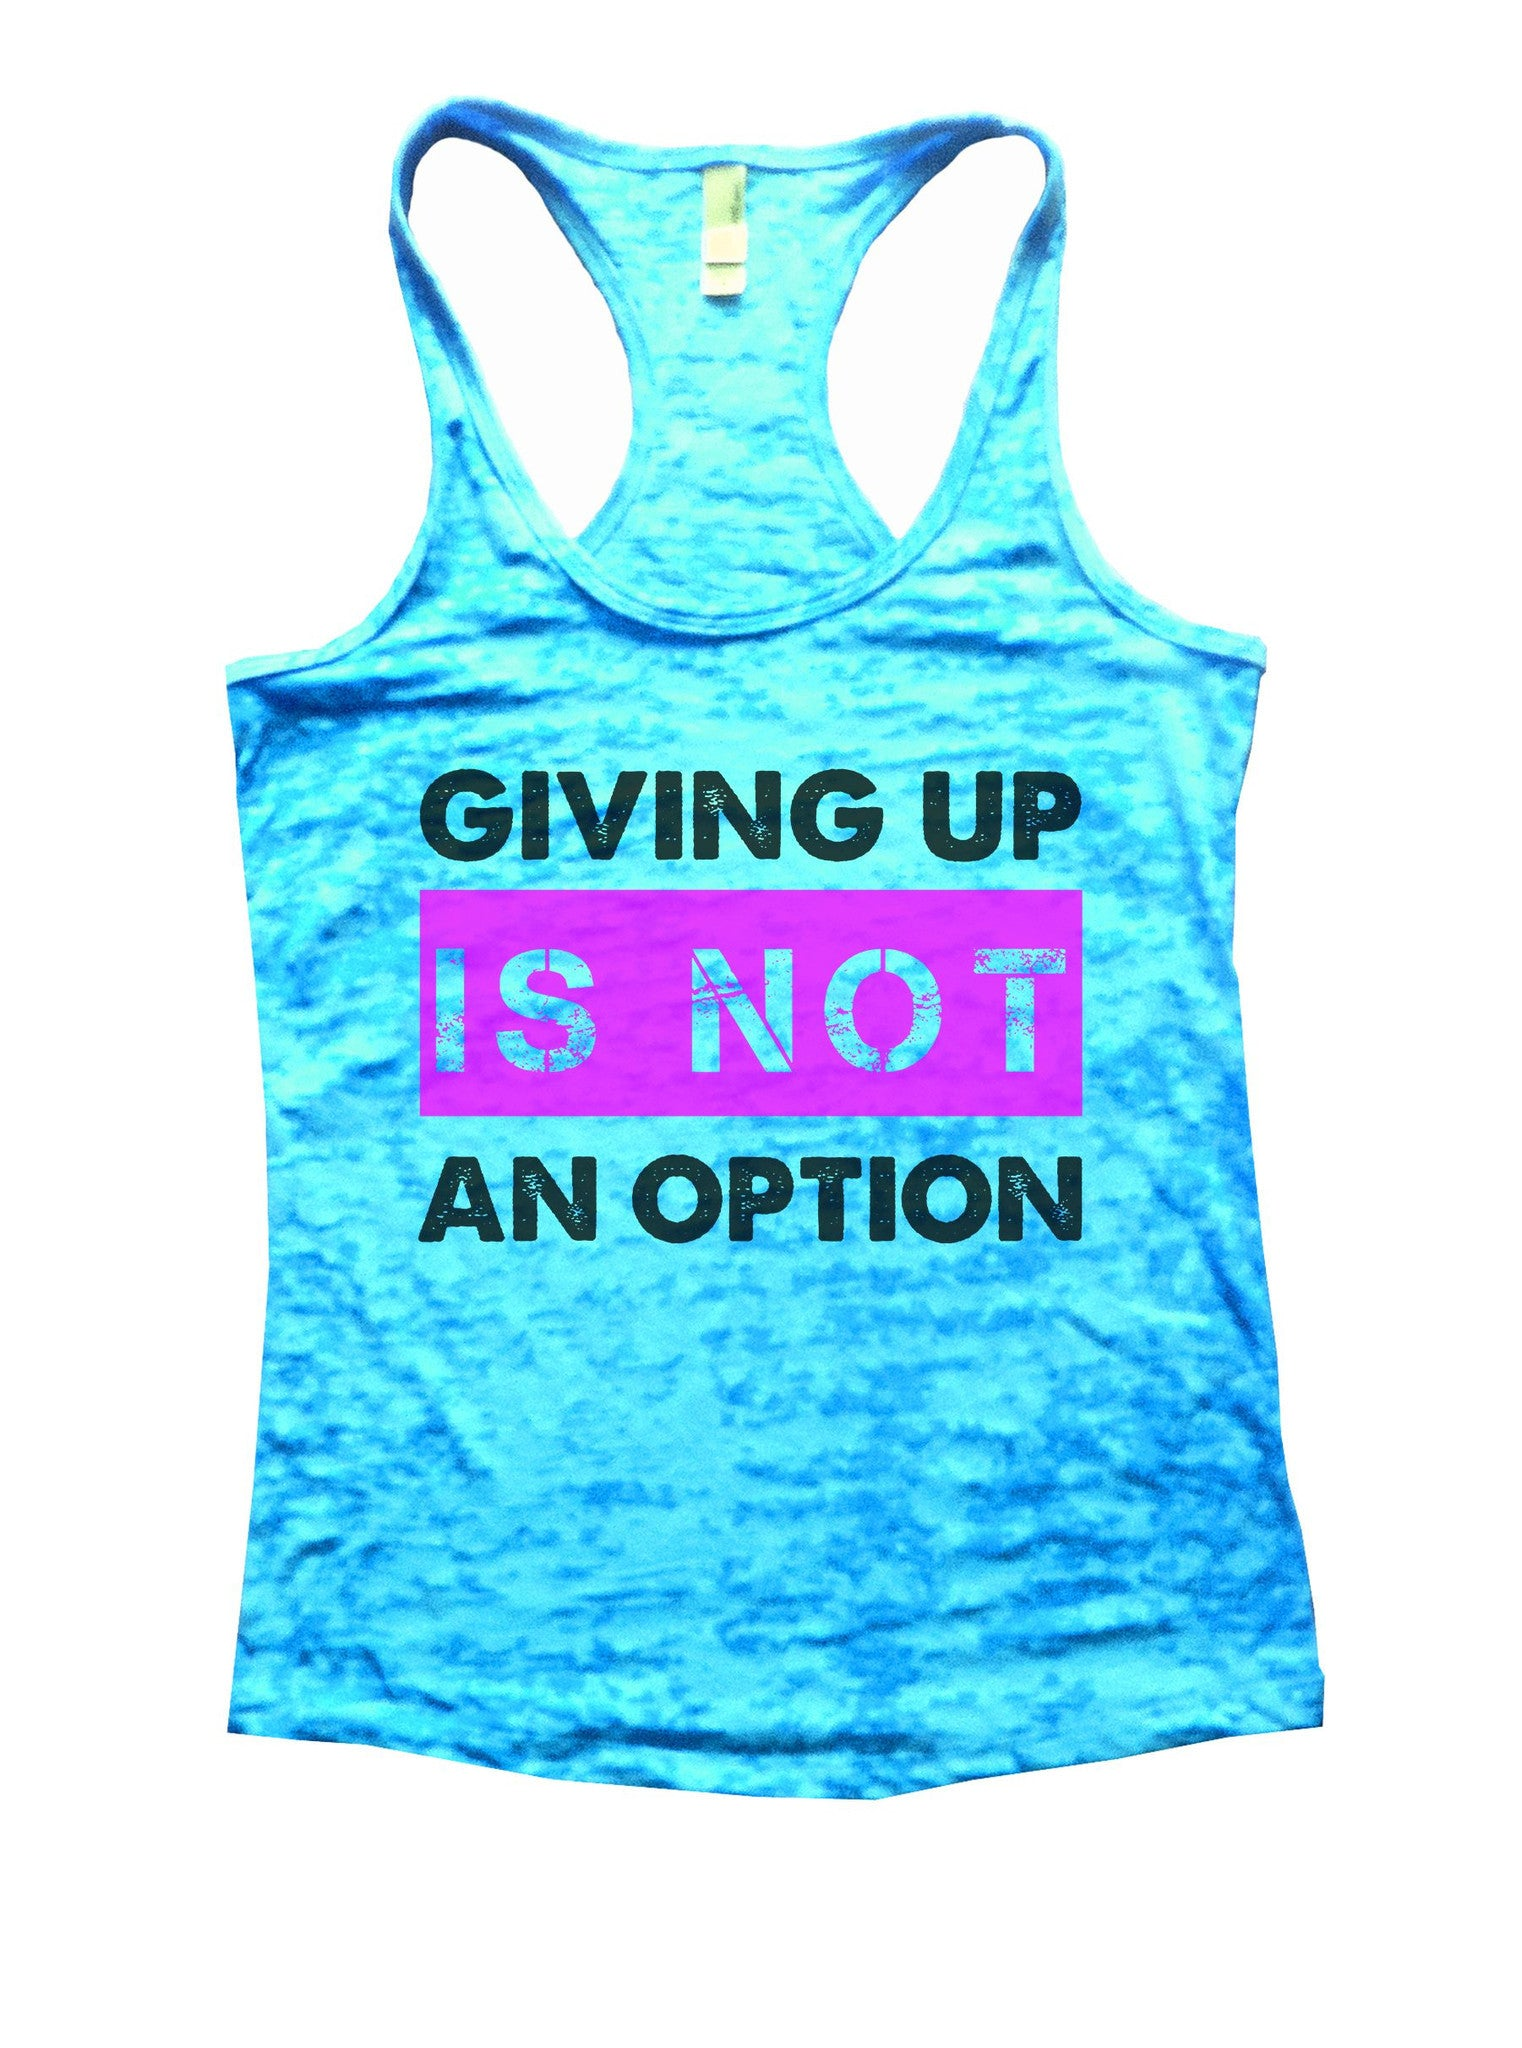 Giving Up Is Not An Option Burnout Tank Top By BurnoutTankTops.com - 844 - Funny Shirts Tank Tops Burnouts and Triblends  - 4